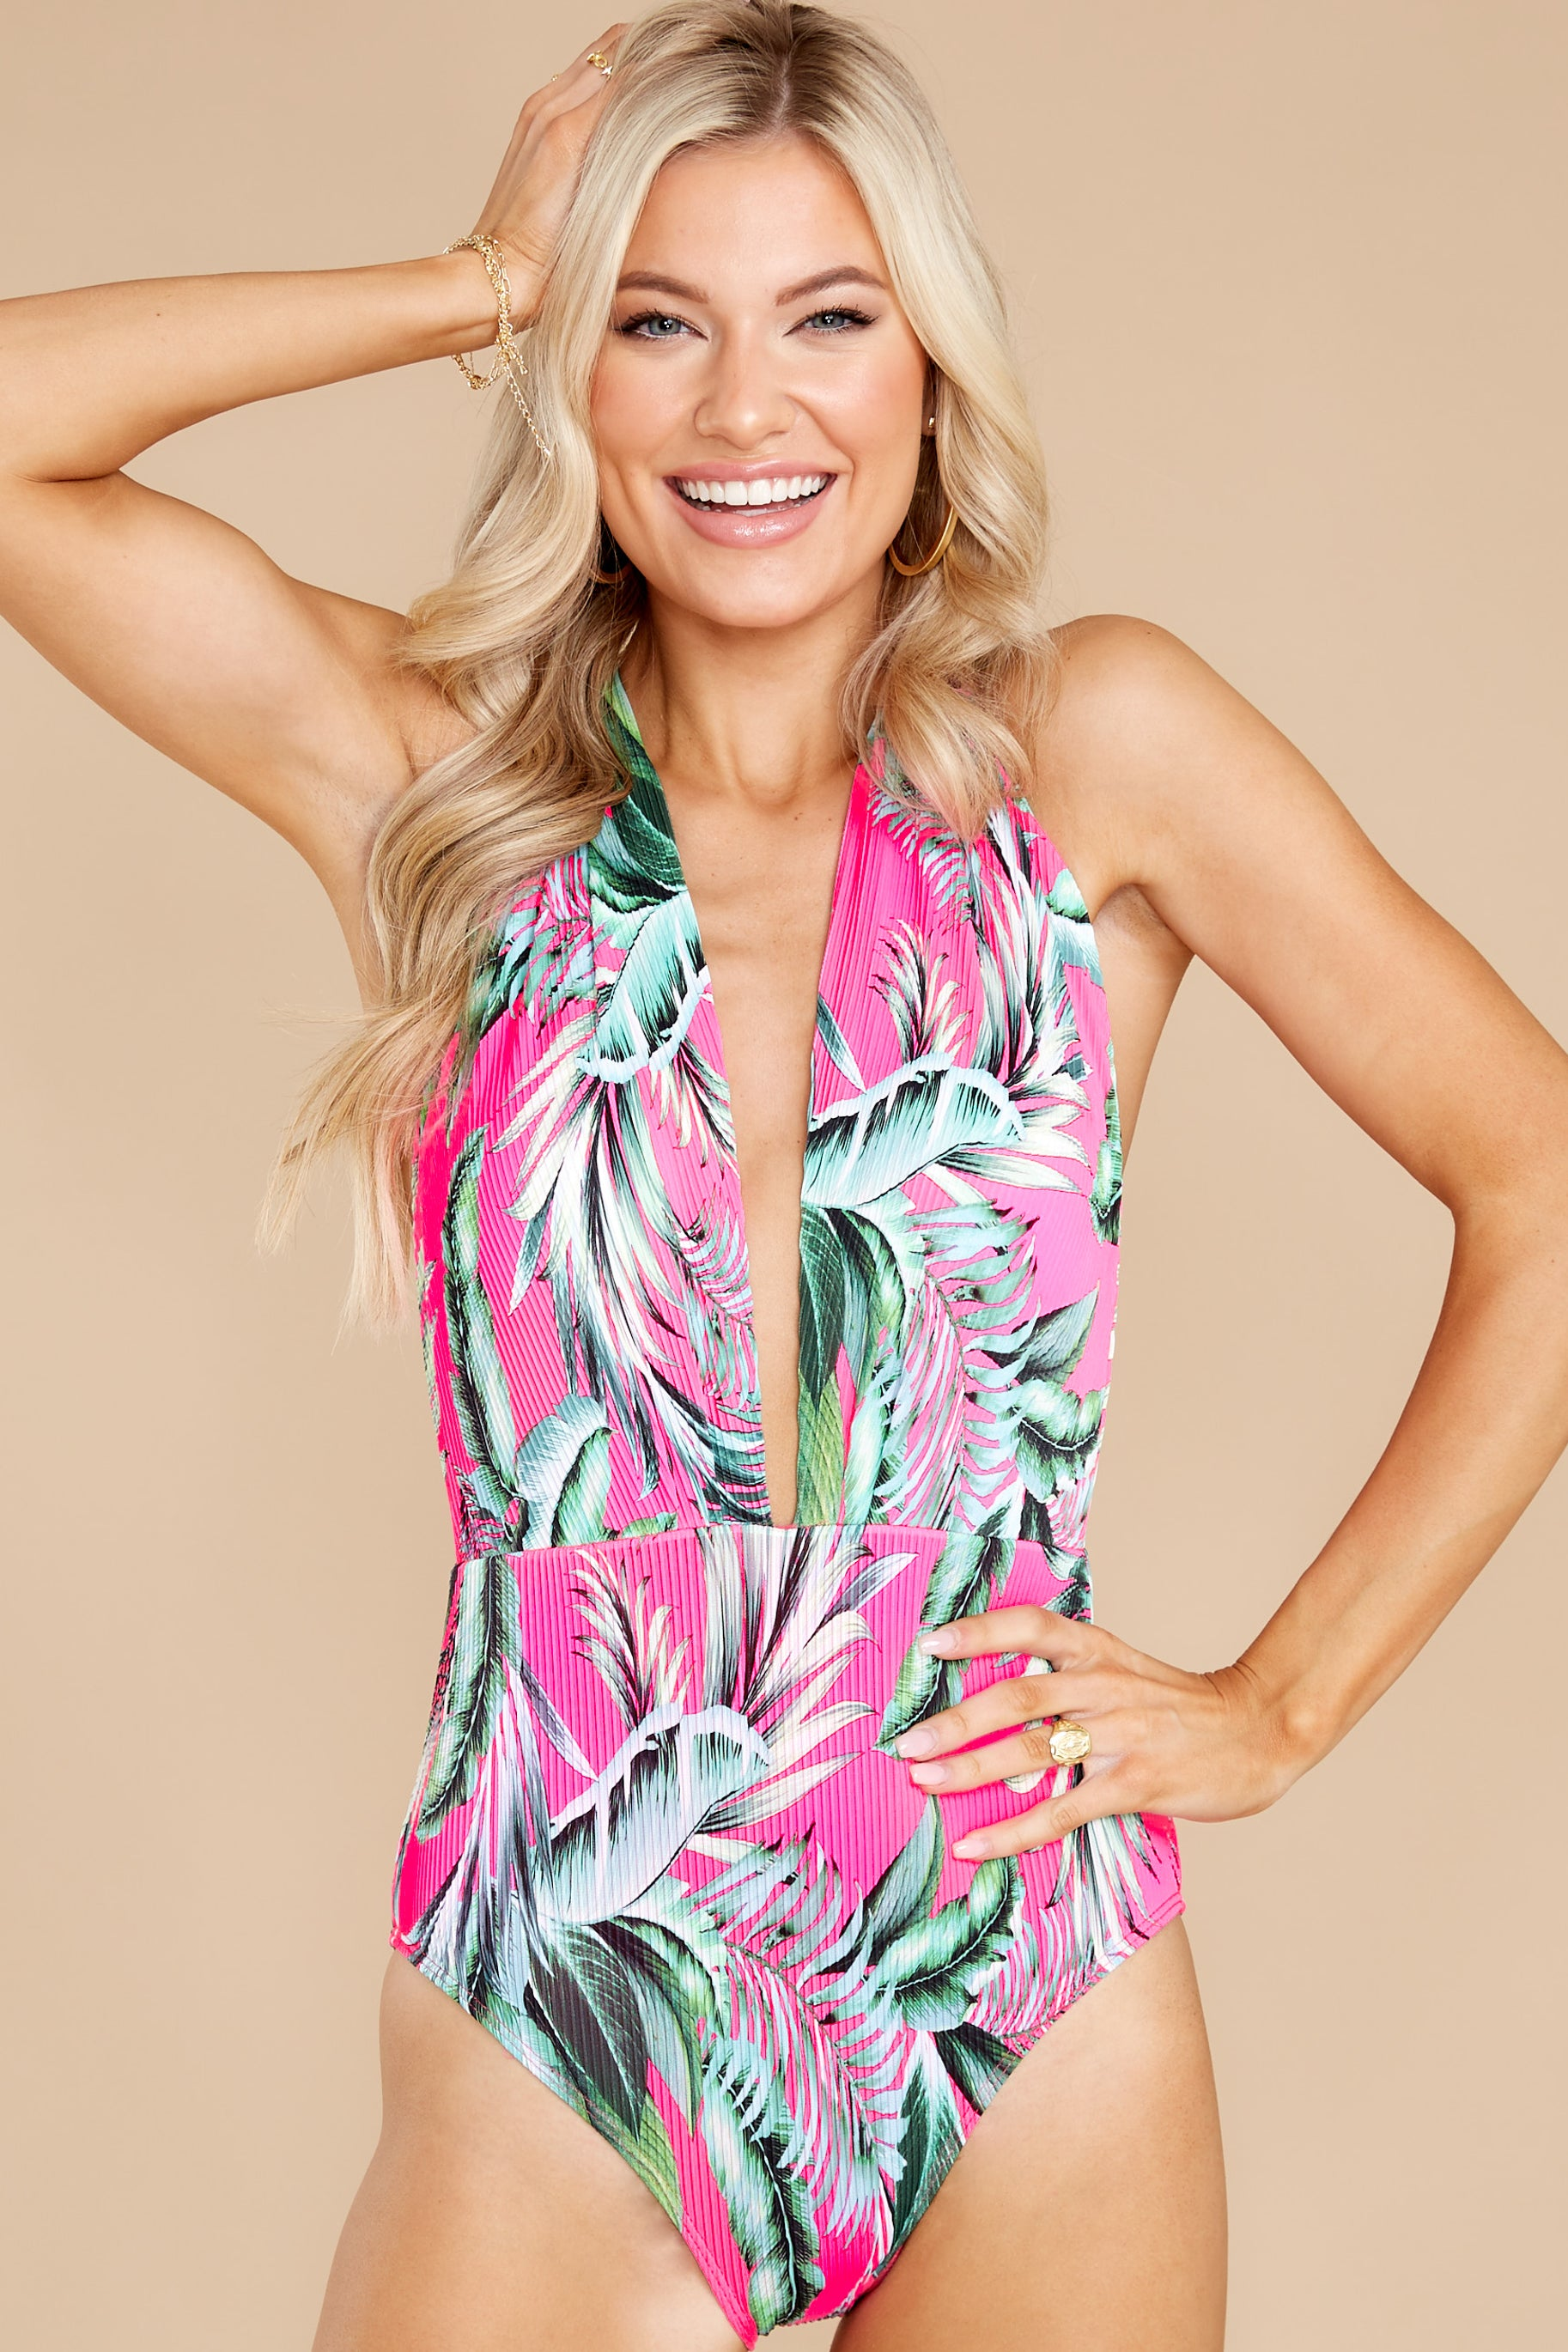 5 A Piece Of Paradise Pink Print One Piece Swimsuit at reddress.com